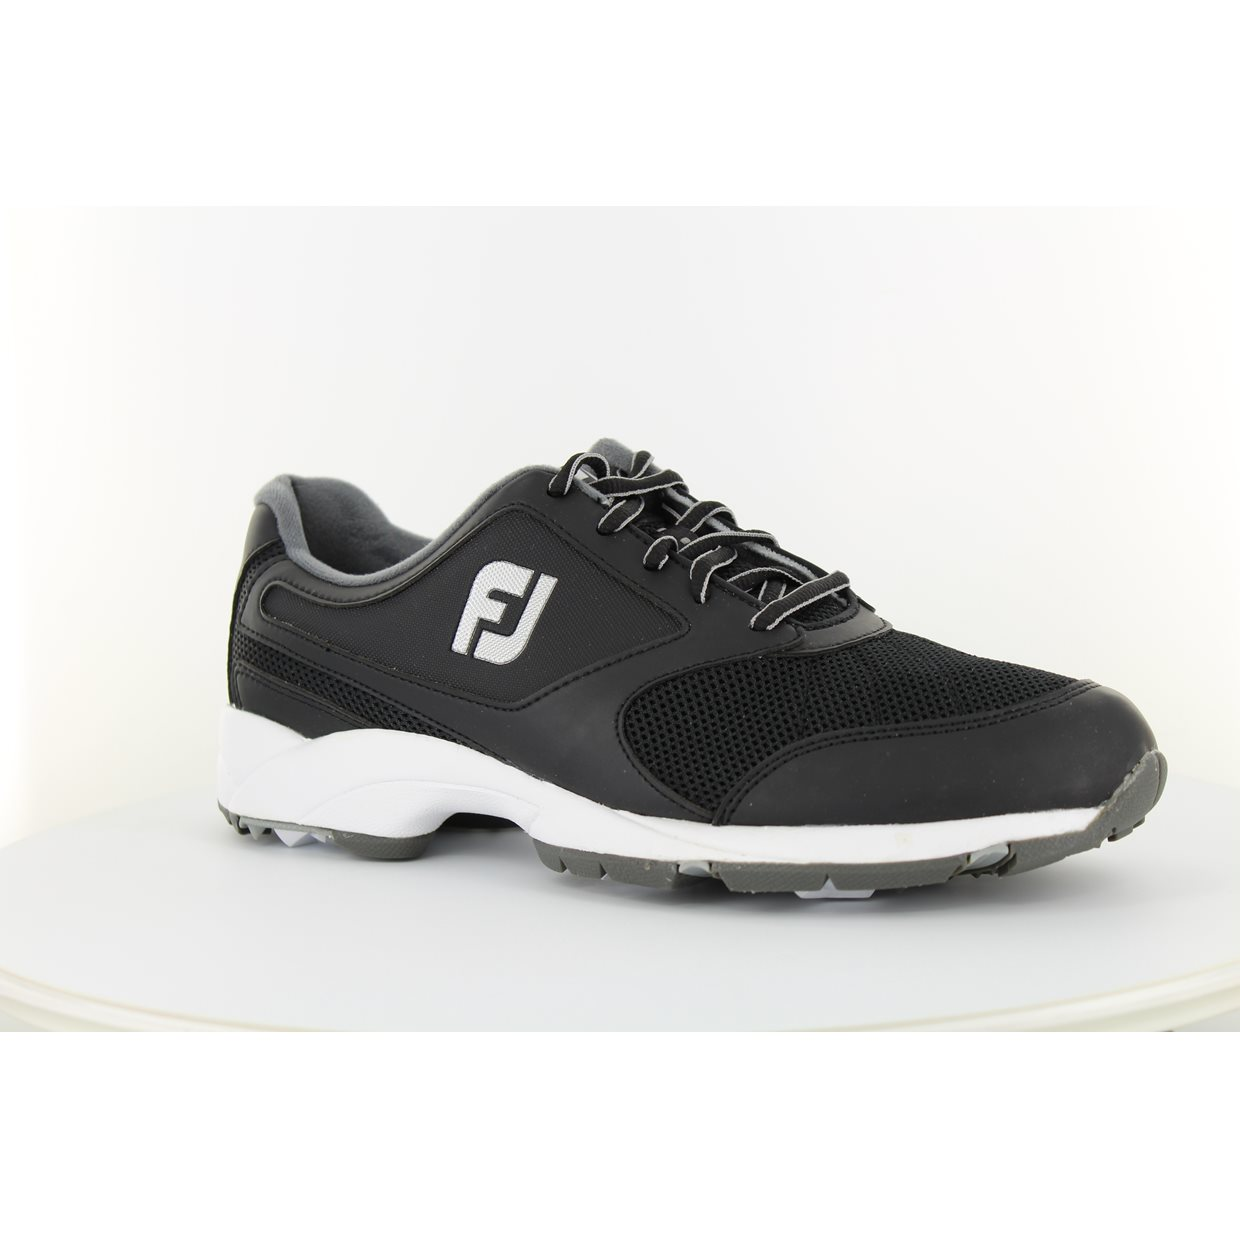 79337c15c222a8 FootJoy FJ Golf Athletics Previous Season Shoe Style Spikeless Shoes at  GlobalGolf.com